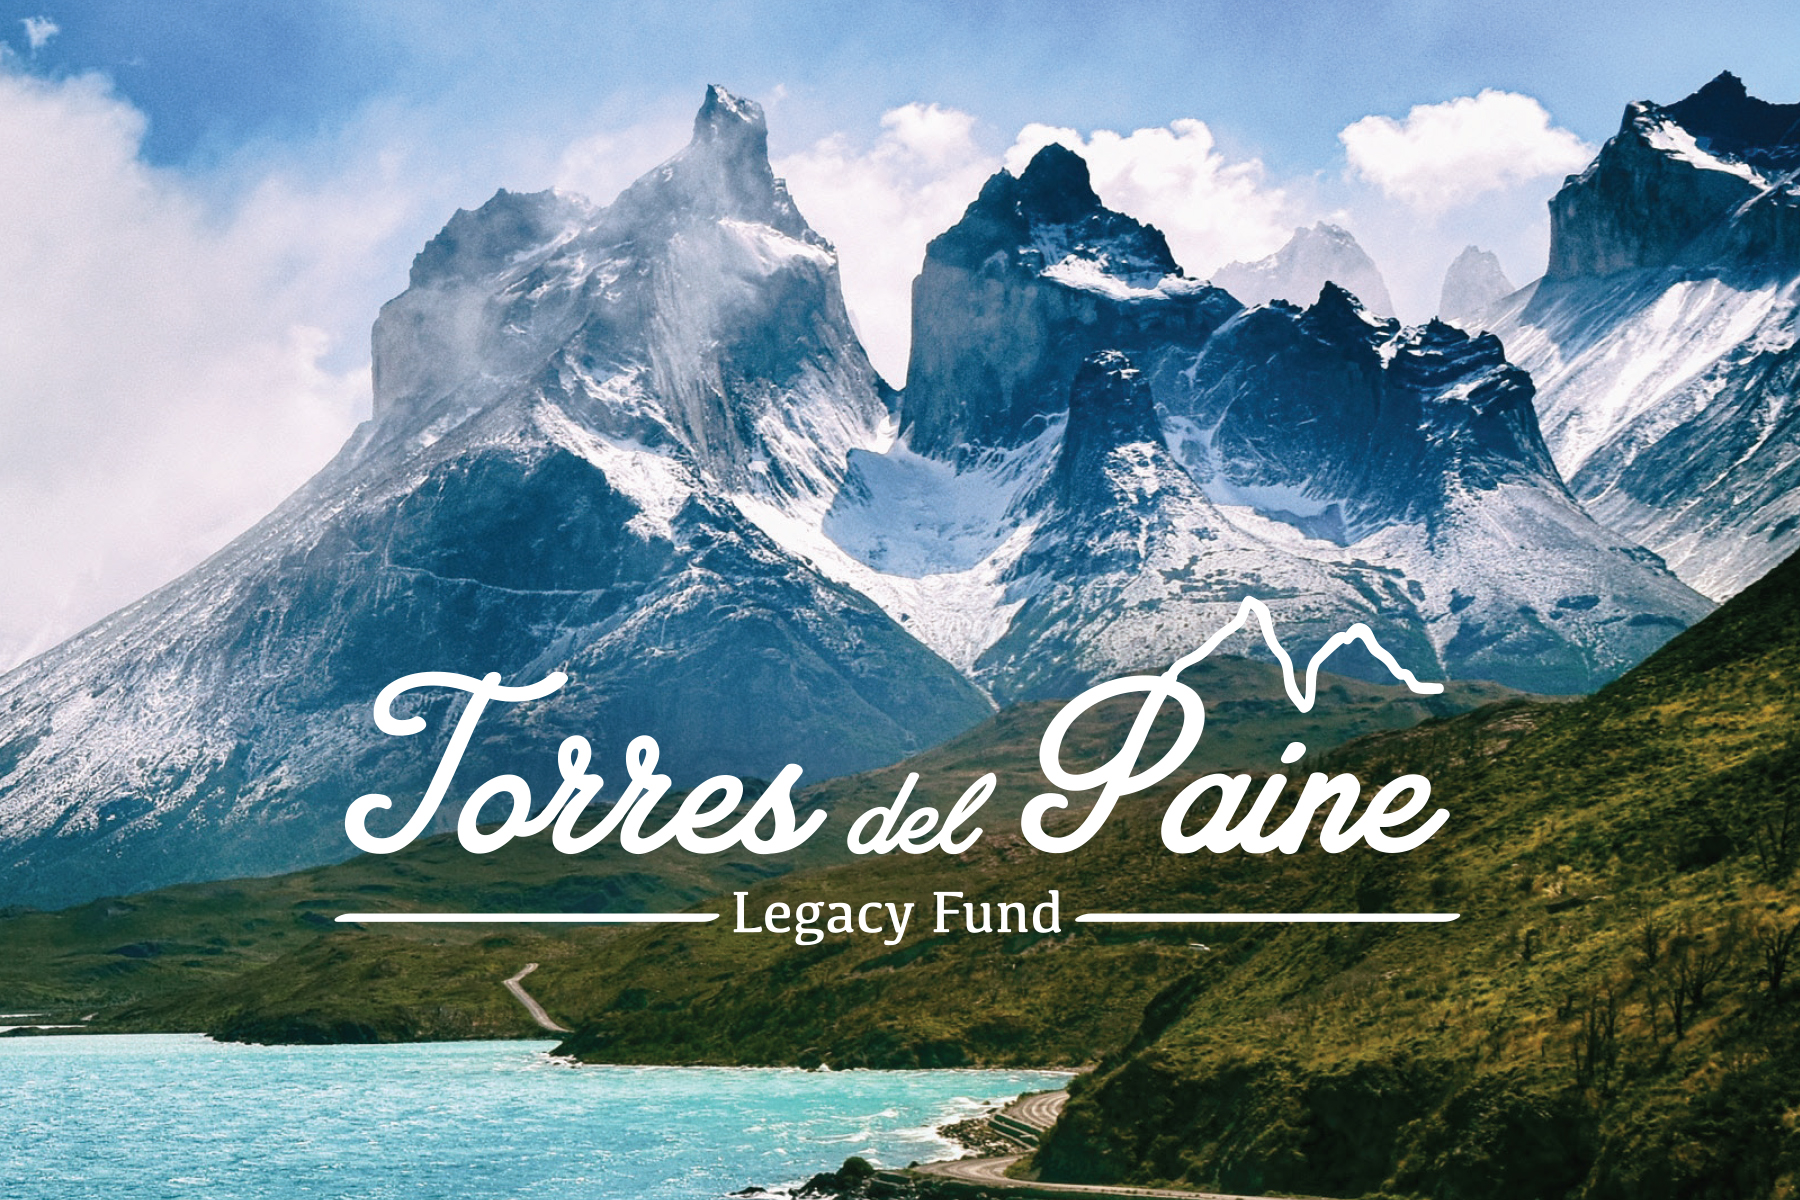 Torres del Paine Legacy Fund logo over Patagonia landscape